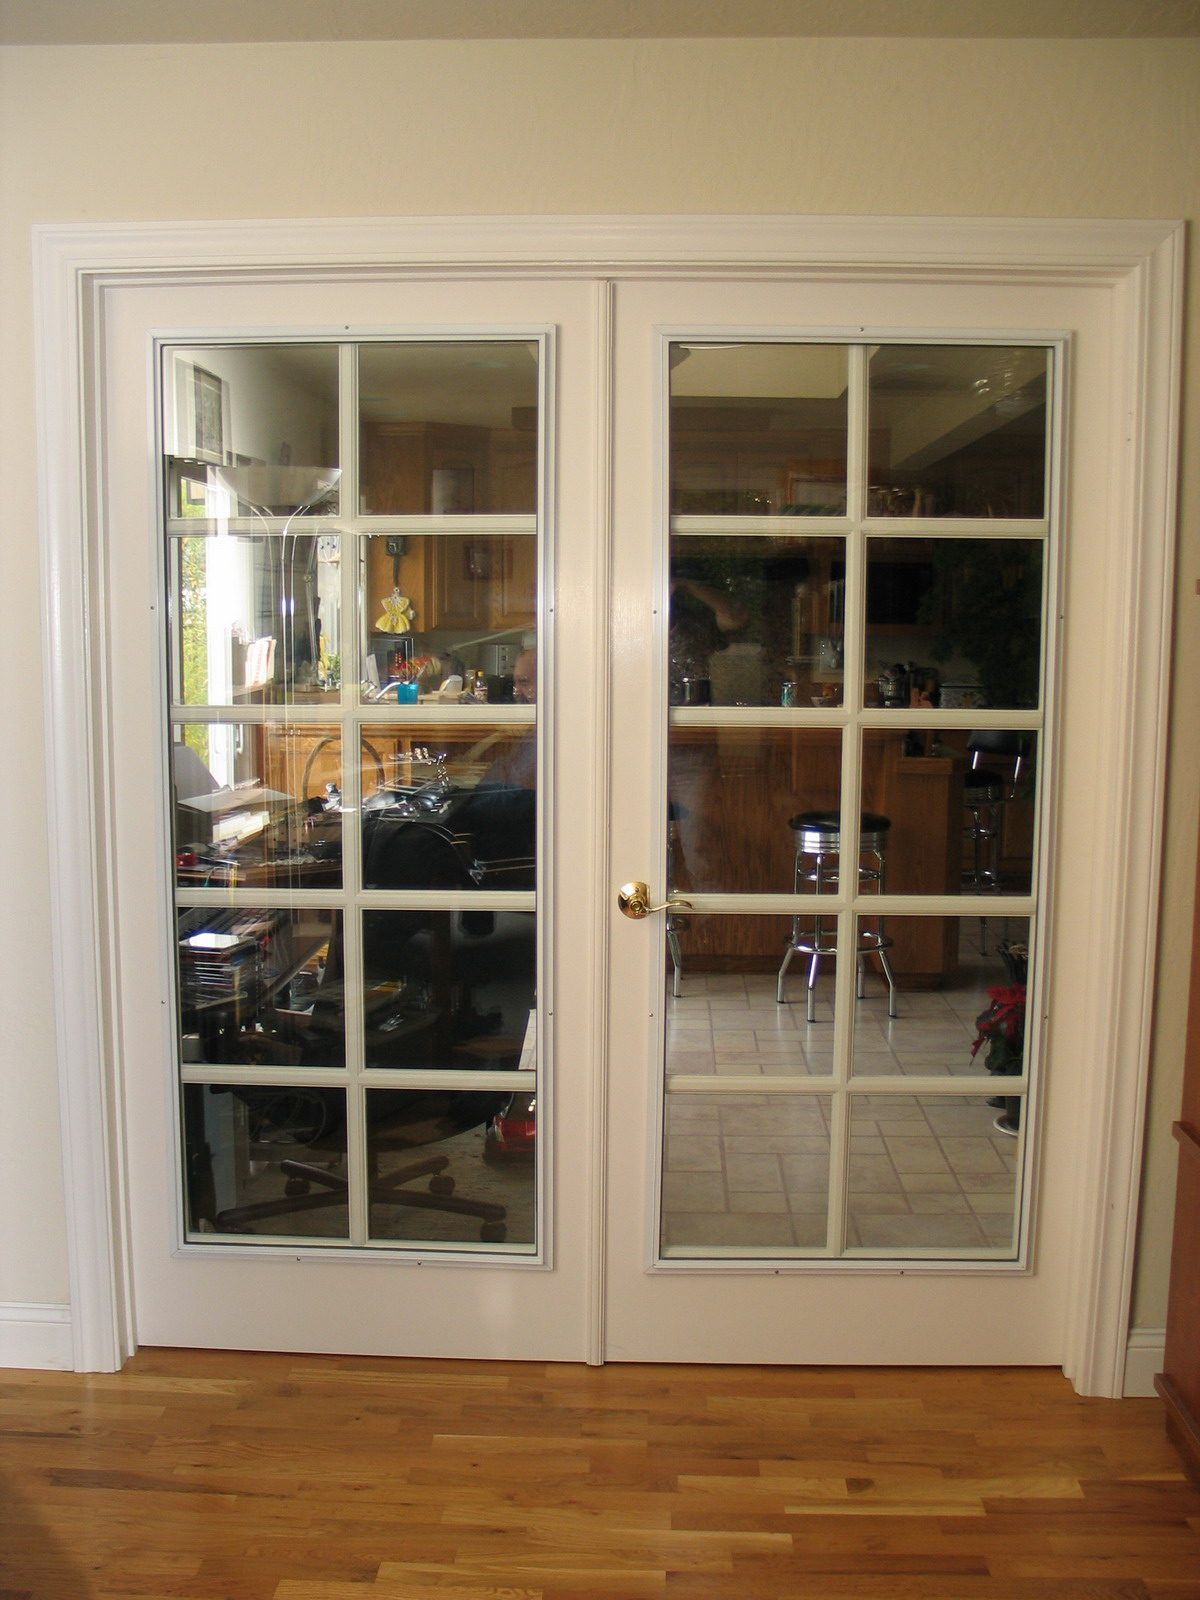 Interior french doors interior french doors - Soundproofing Glass Panel Mounted On An Interior French Door